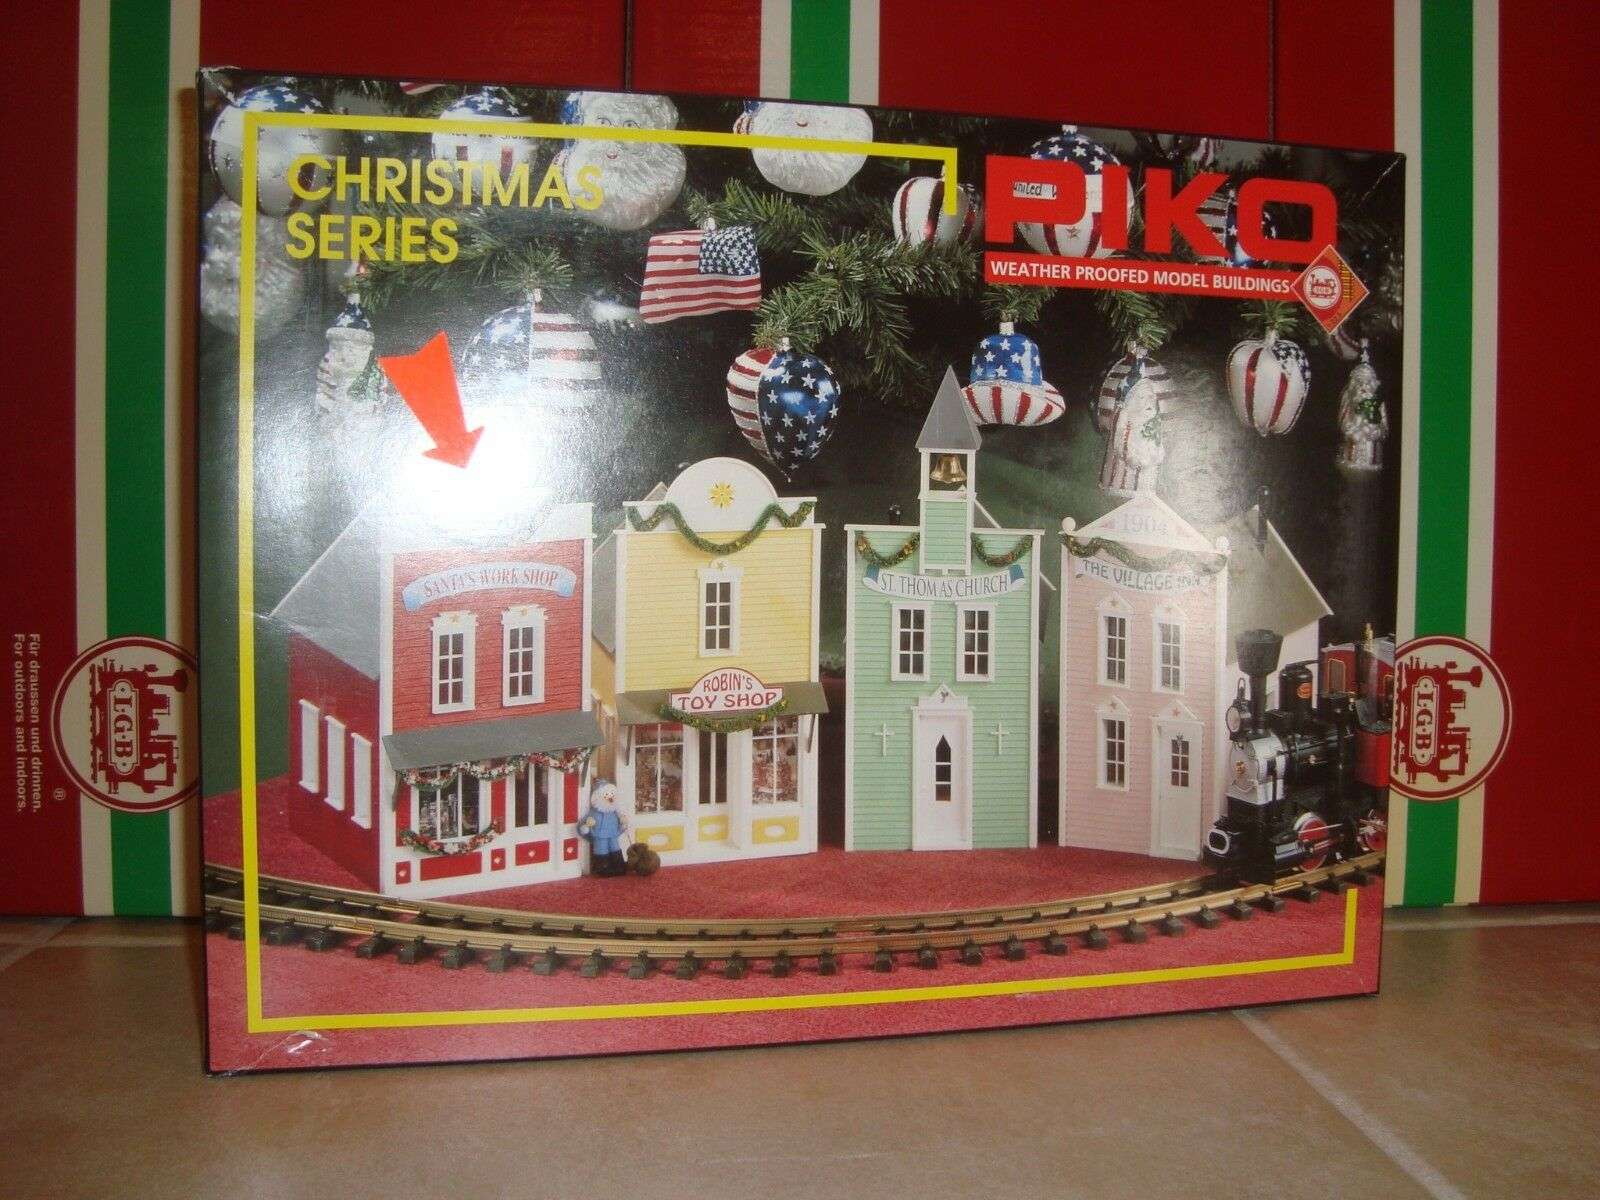 PIKO 62200 CHRISTMAS G SCALE SANTA'S WORK SHOP KIT UNASSEMBLED MODEL NEW IN BOX